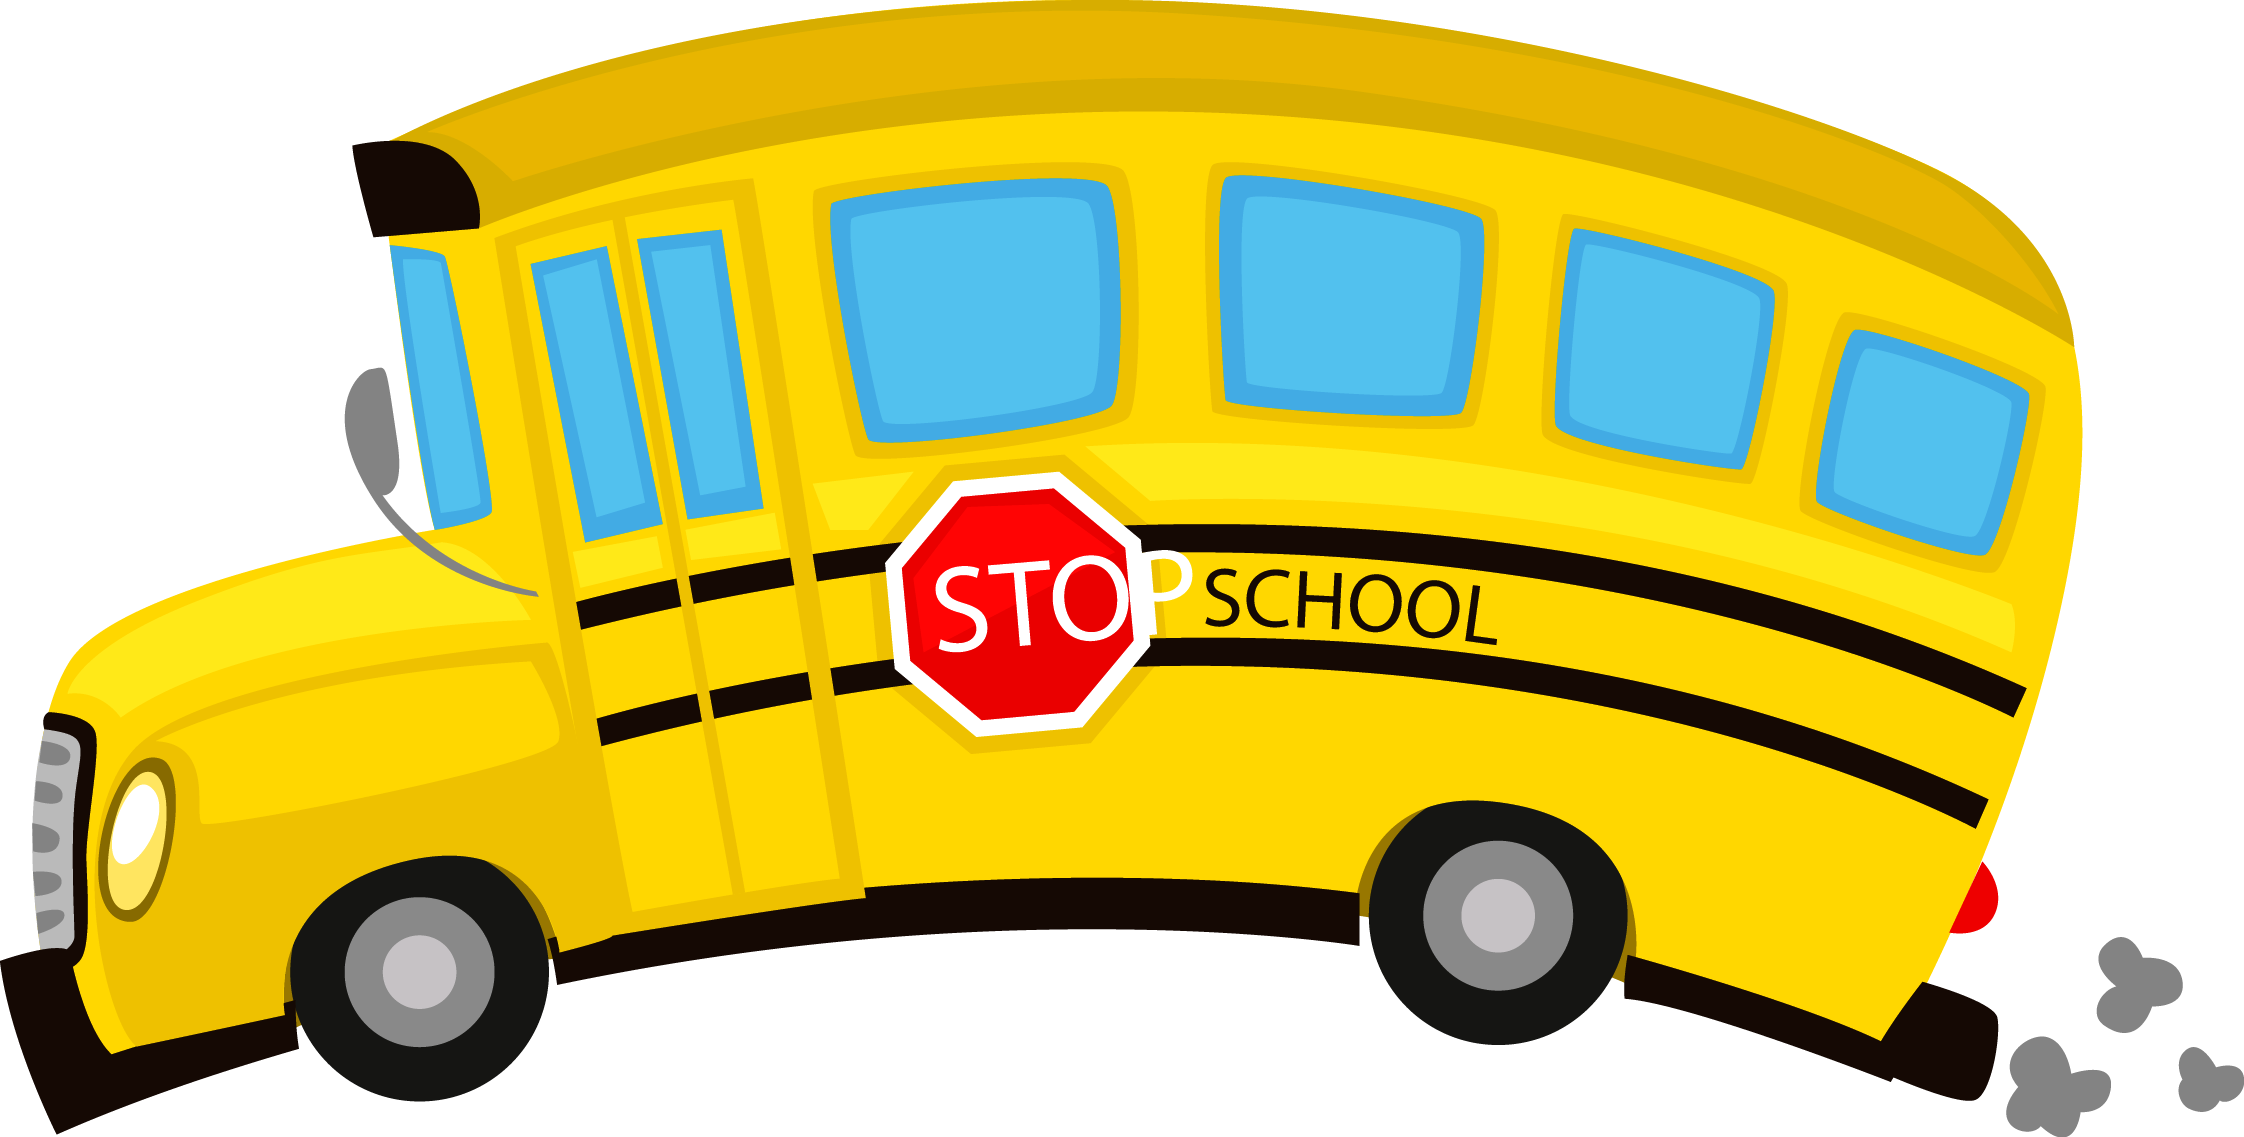 Drawing buses. School bus illustration yellow